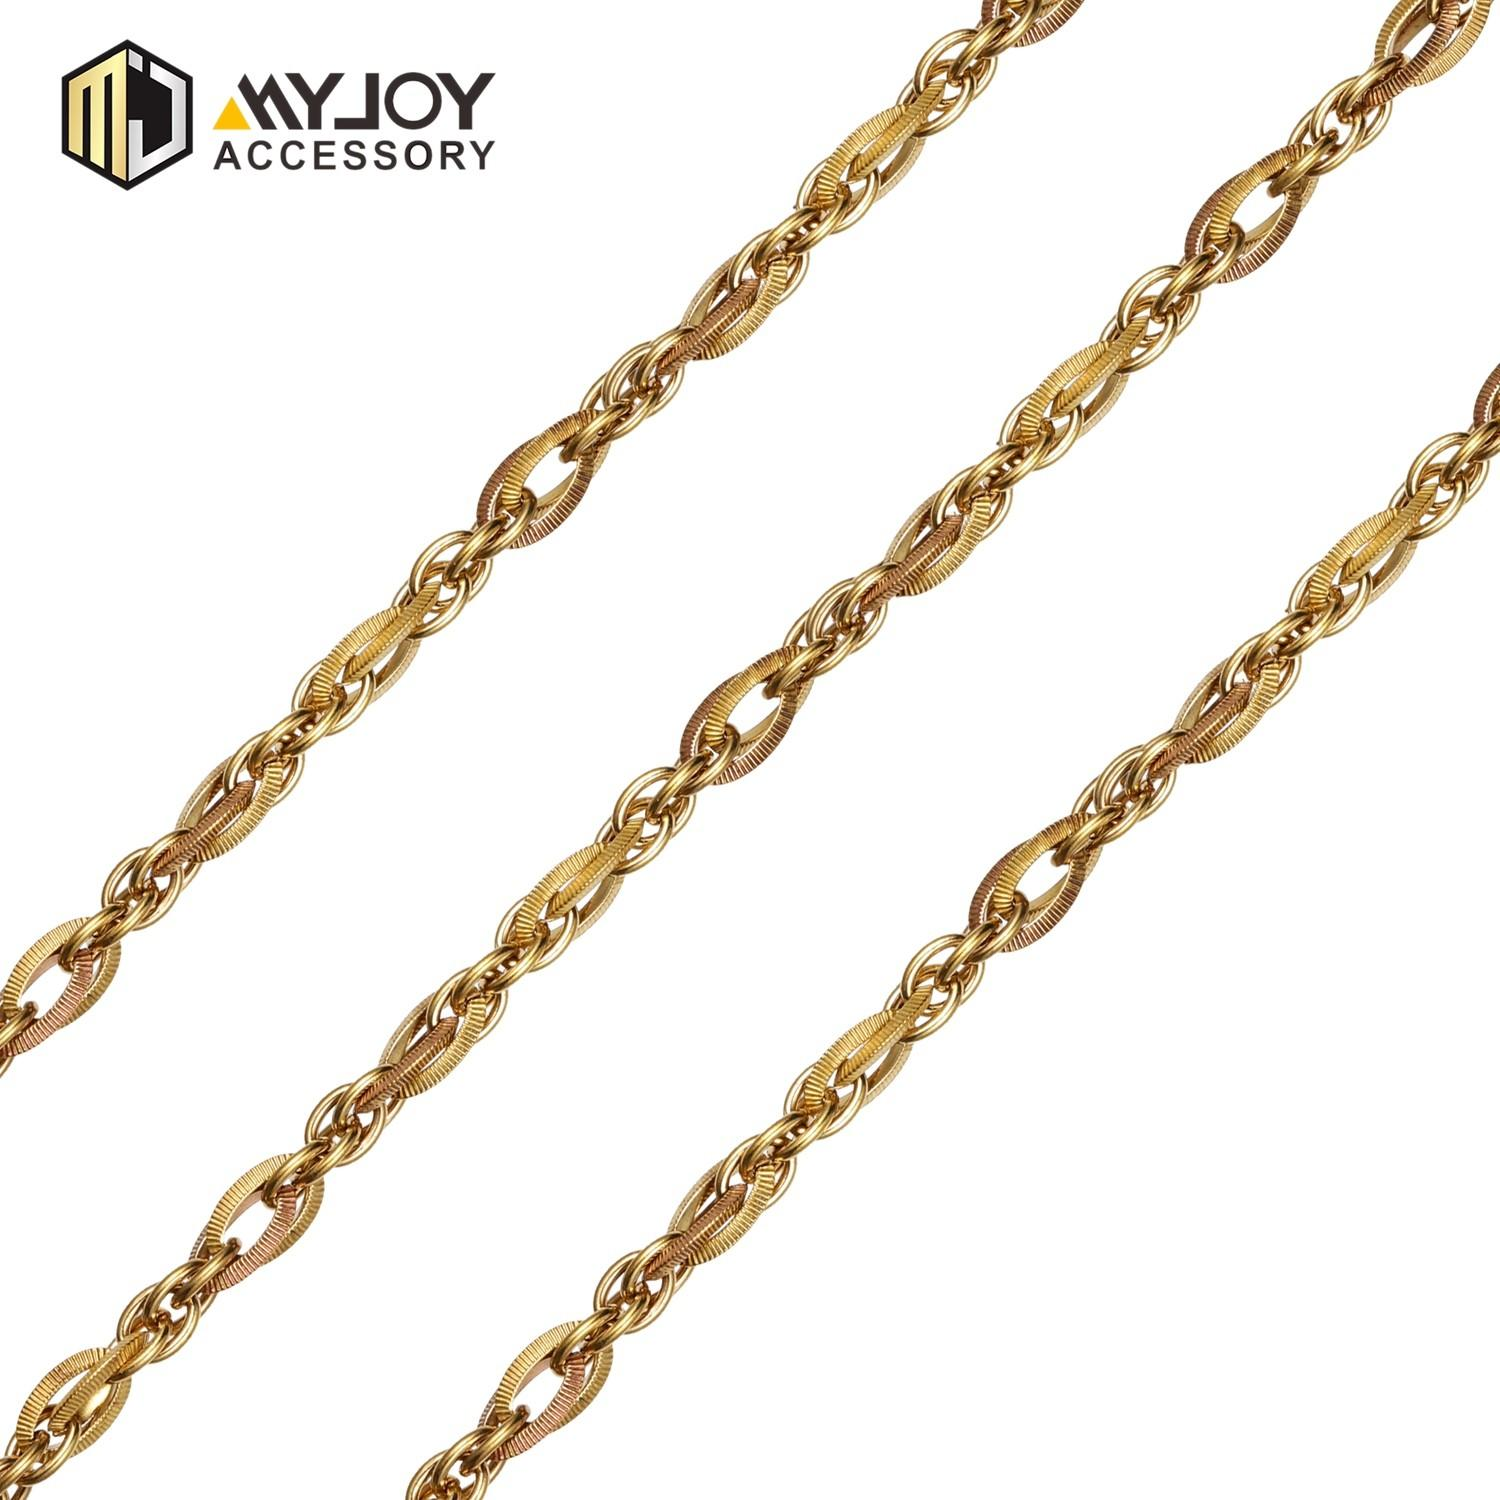 MYJOY Best handbag chain strap factory for bags-3